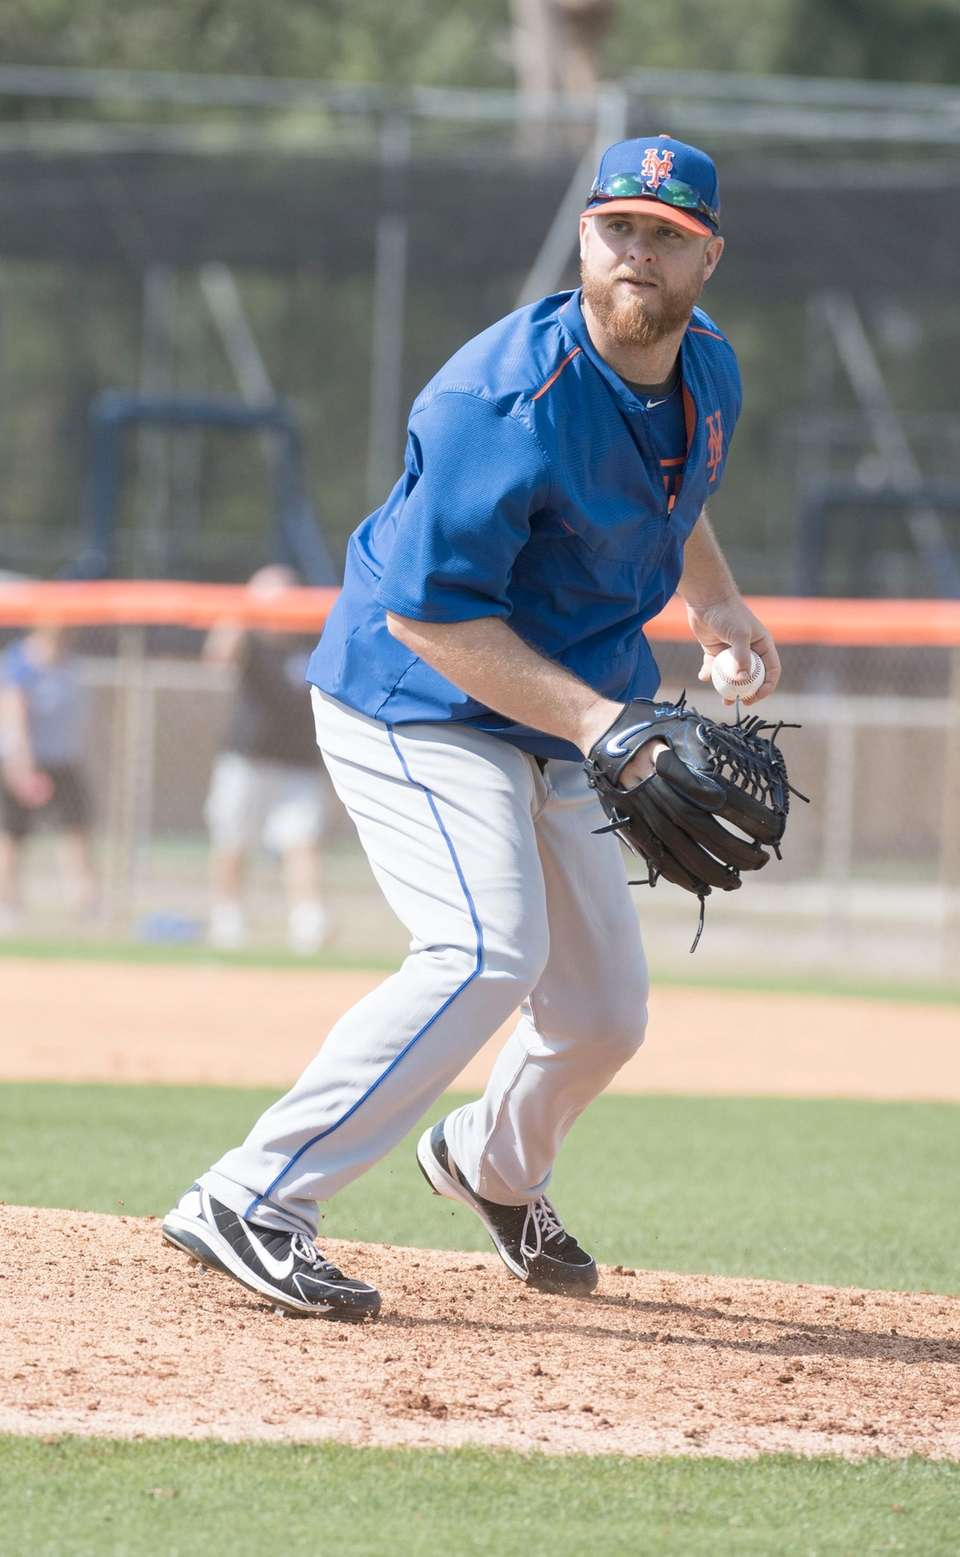 Mets pitcher Josh Edgin fields the ball during